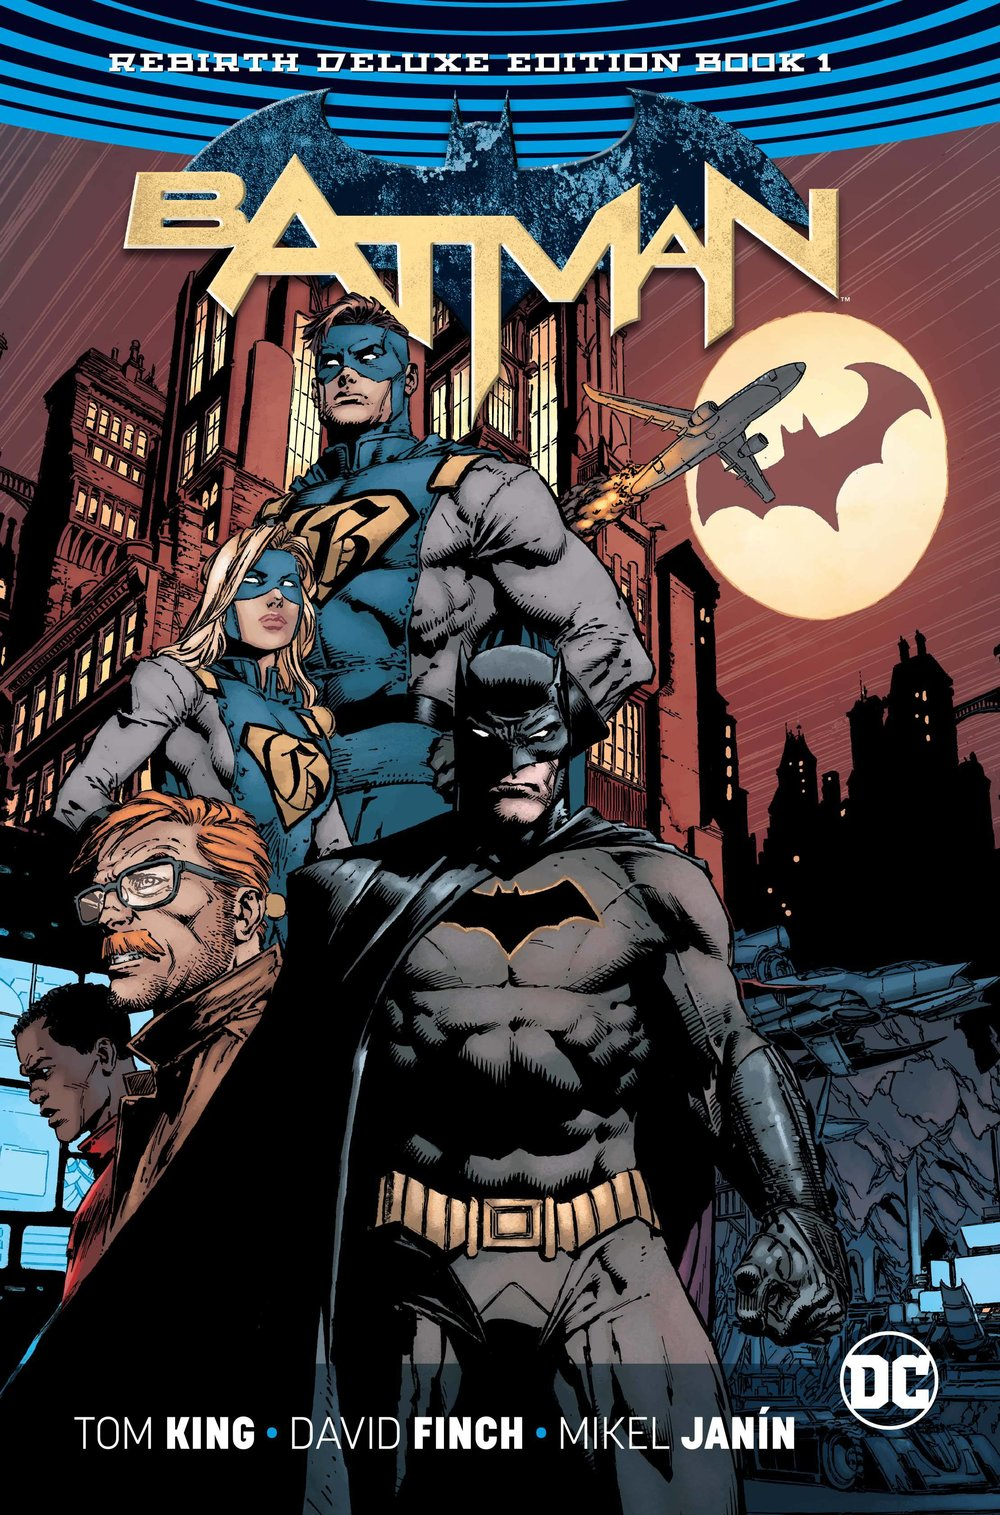 BATMAN REBIRTH DLX COLL HC 1.jpg